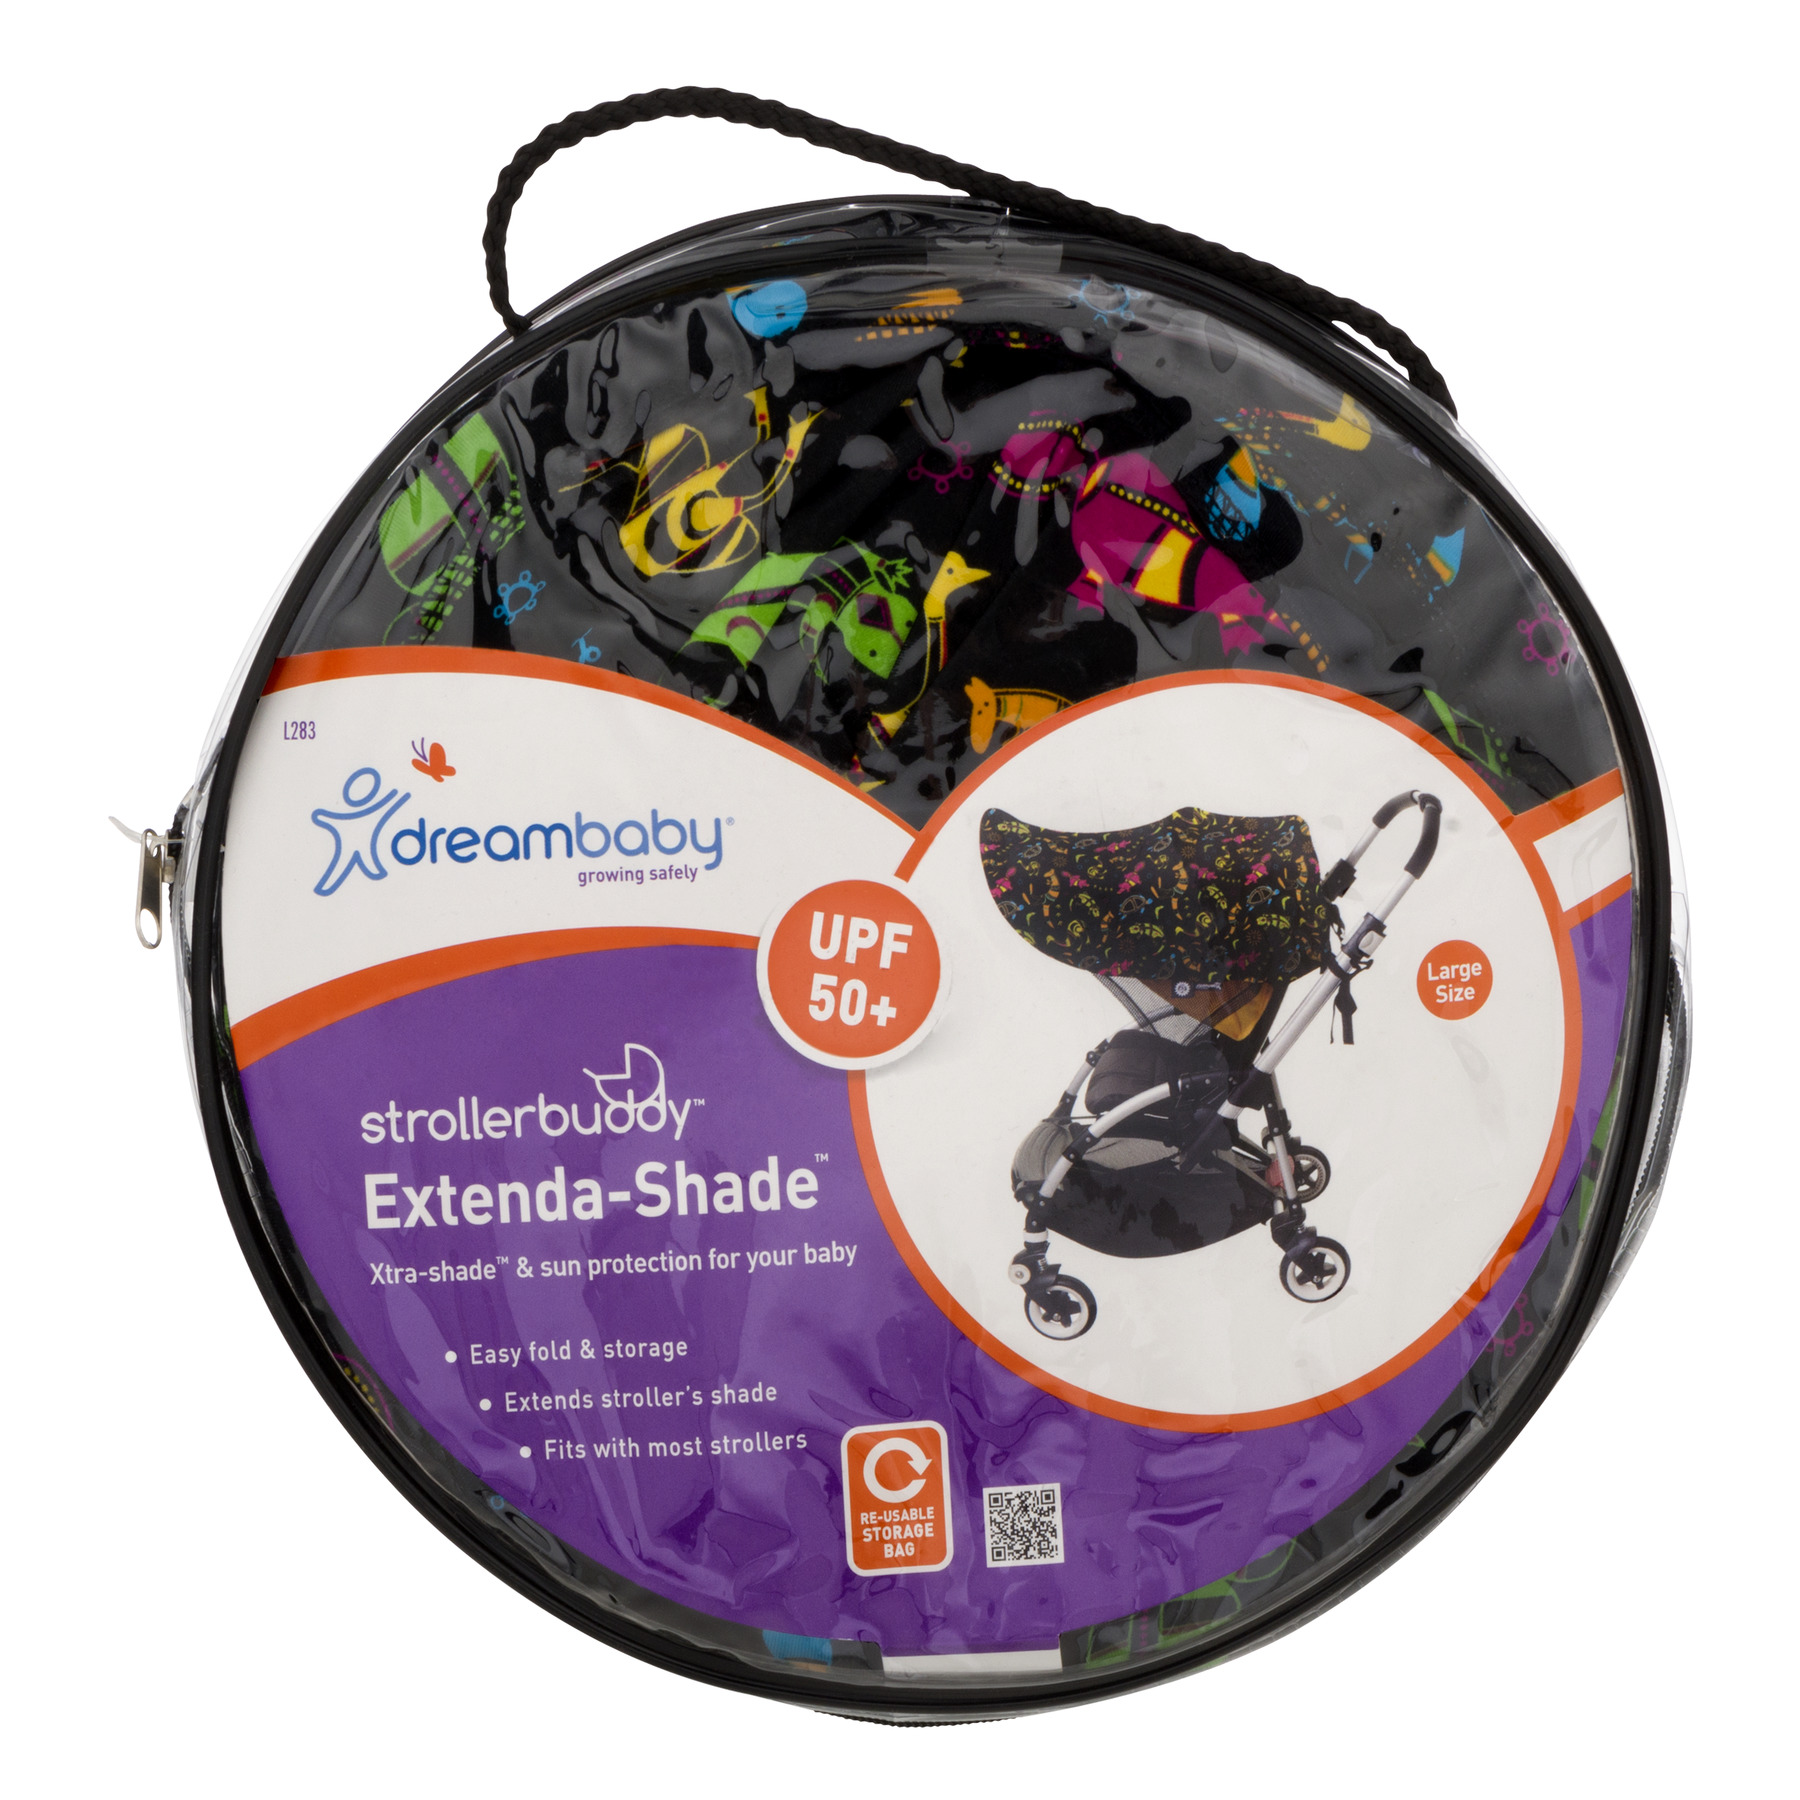 Dreambaby Stroller Buddy Extenda - Shade UPF 50+, Large, 1.0 CT